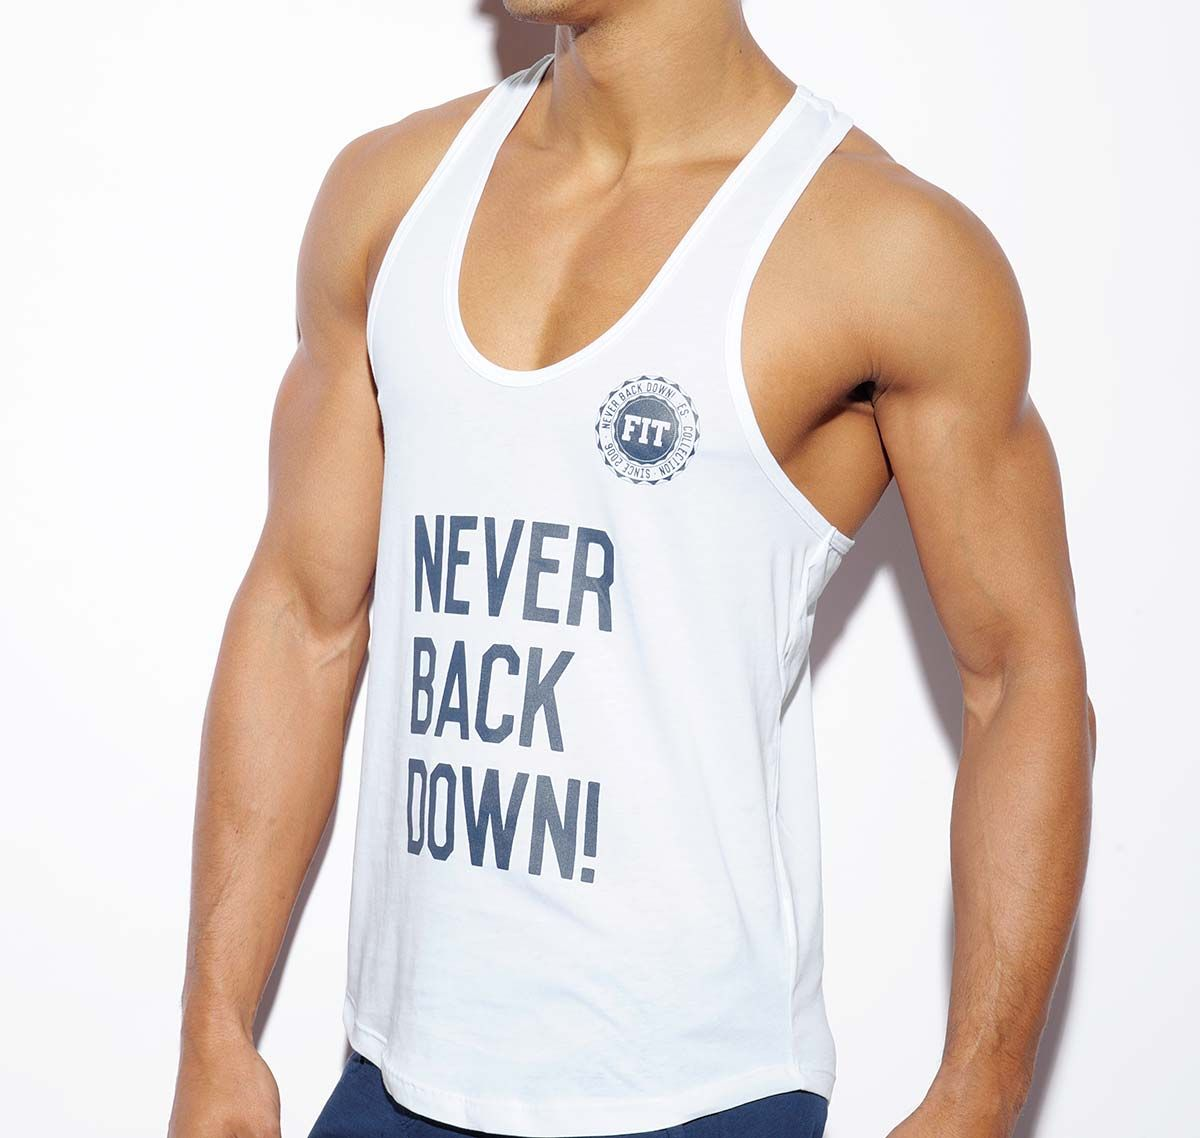 ES Collection NEVER BACK DOWN TANK TOP TS169, weiß